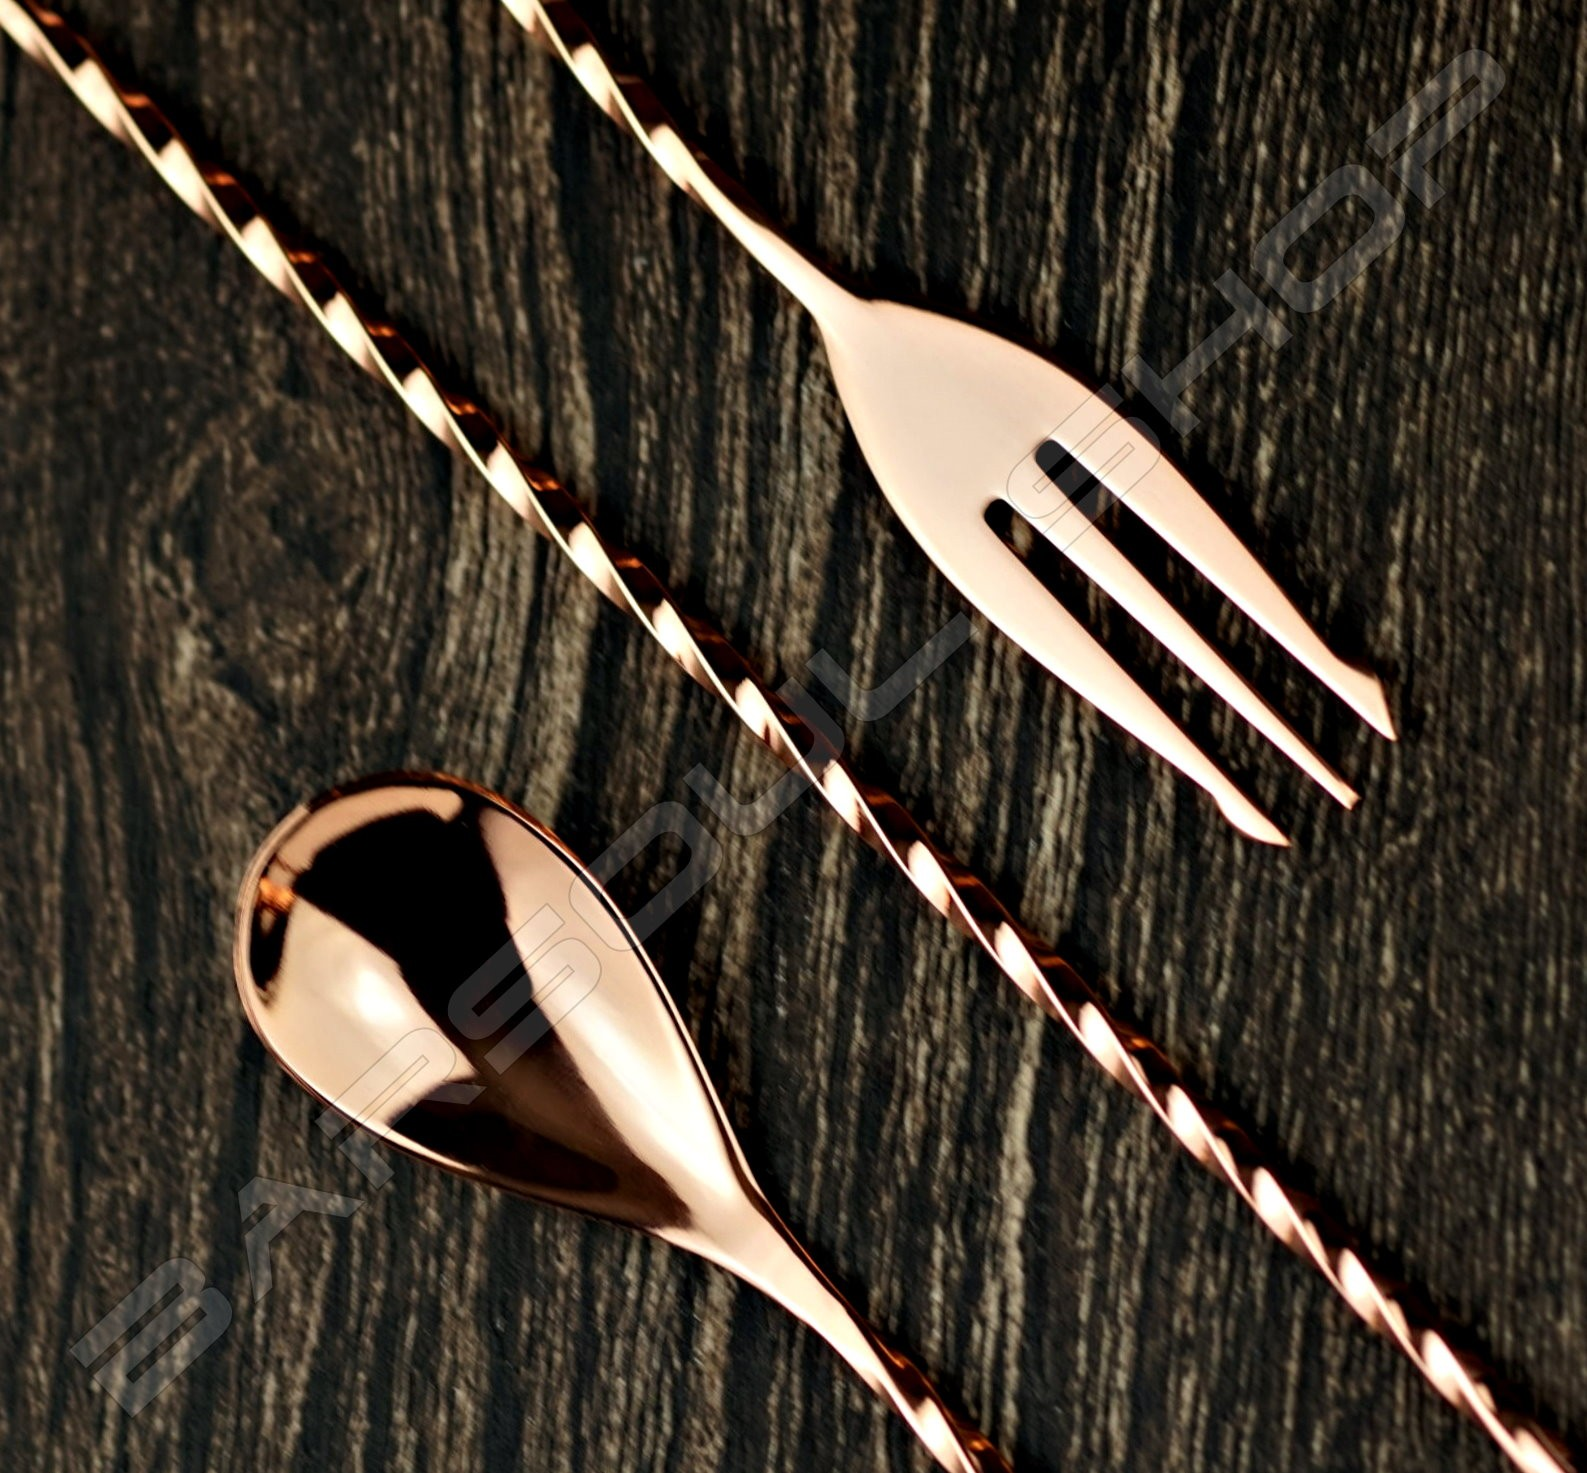 30cm 鍍玫瑰金吧叉匙 Barspoon(plating rose gold)